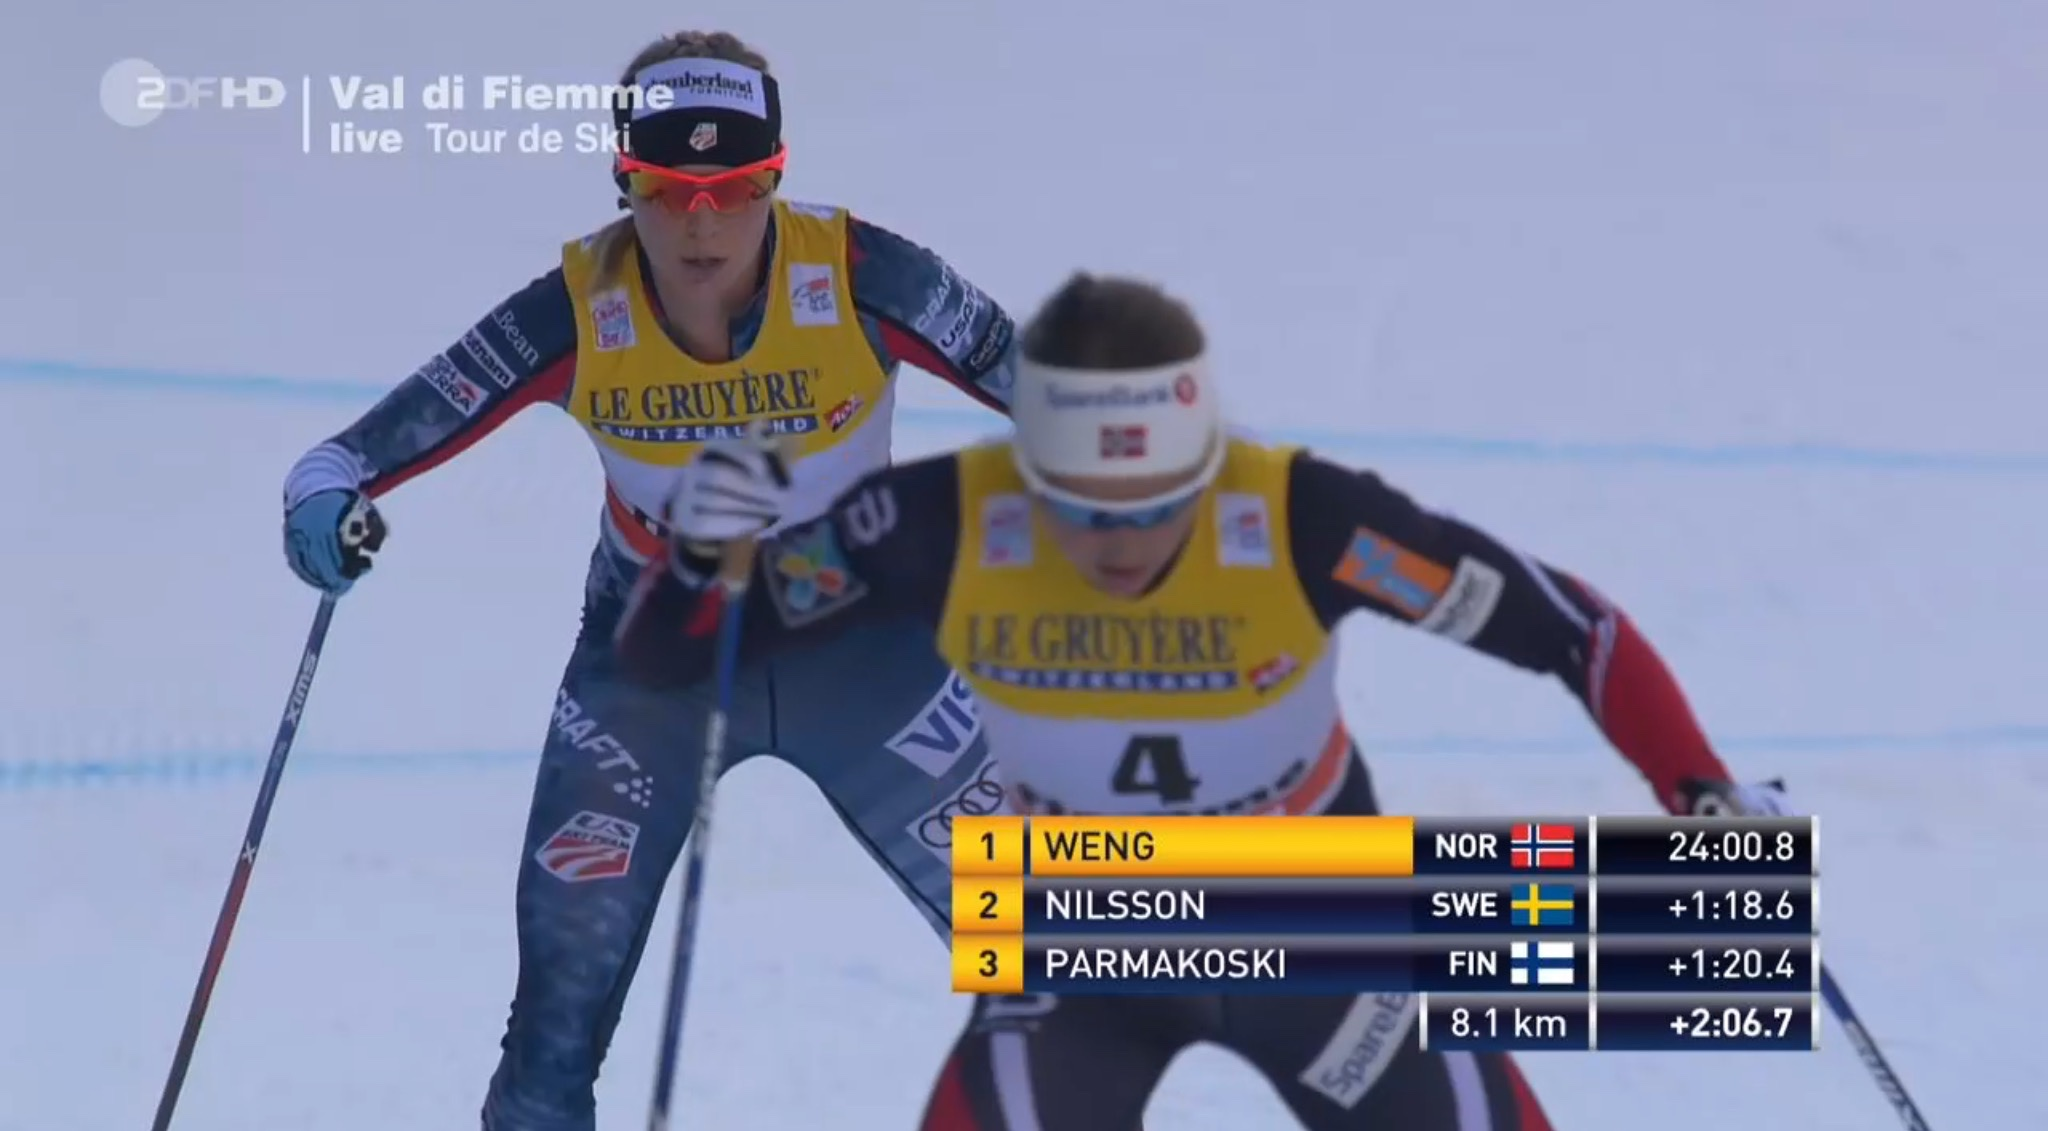 American Jessie Diggins chasing Norway's Ingvild Flugstad Østberg on the final climb of the 2017 Tour de Ski up the Alpe Cermis in Val di Fiemme, Italy. Østberg finished the Tour in fourth and Diggins fifth, tying a best-ever mark for the U.S., set in 2015 by Liz Stephen. (Photo: ZDF screenshot)